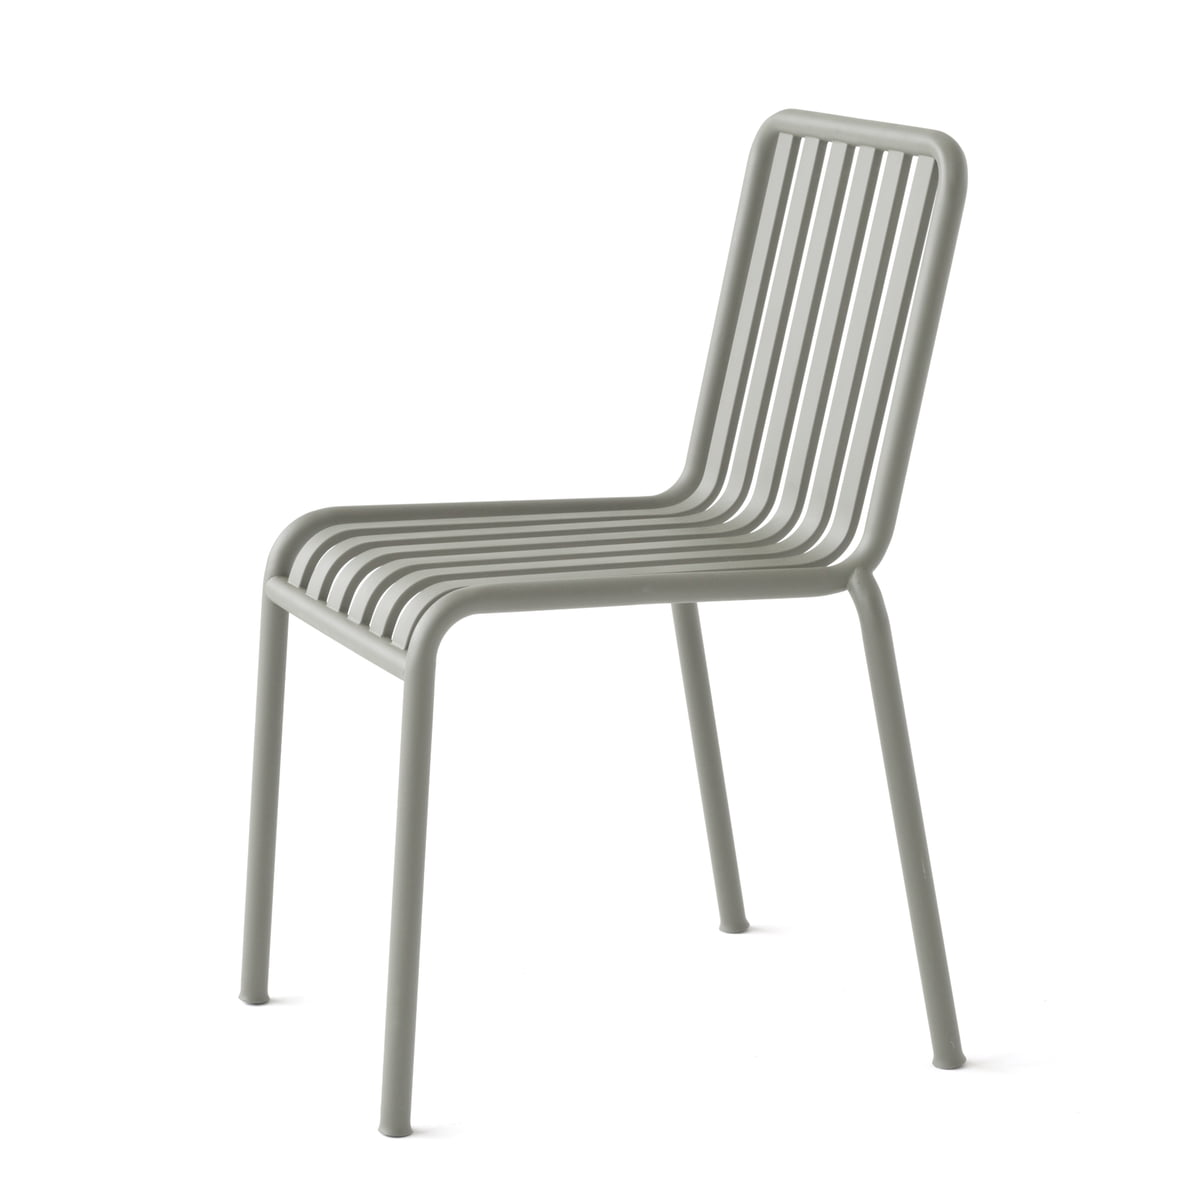 Outstanding Hay Palissade Chair Light Grey Alphanode Cool Chair Designs And Ideas Alphanodeonline